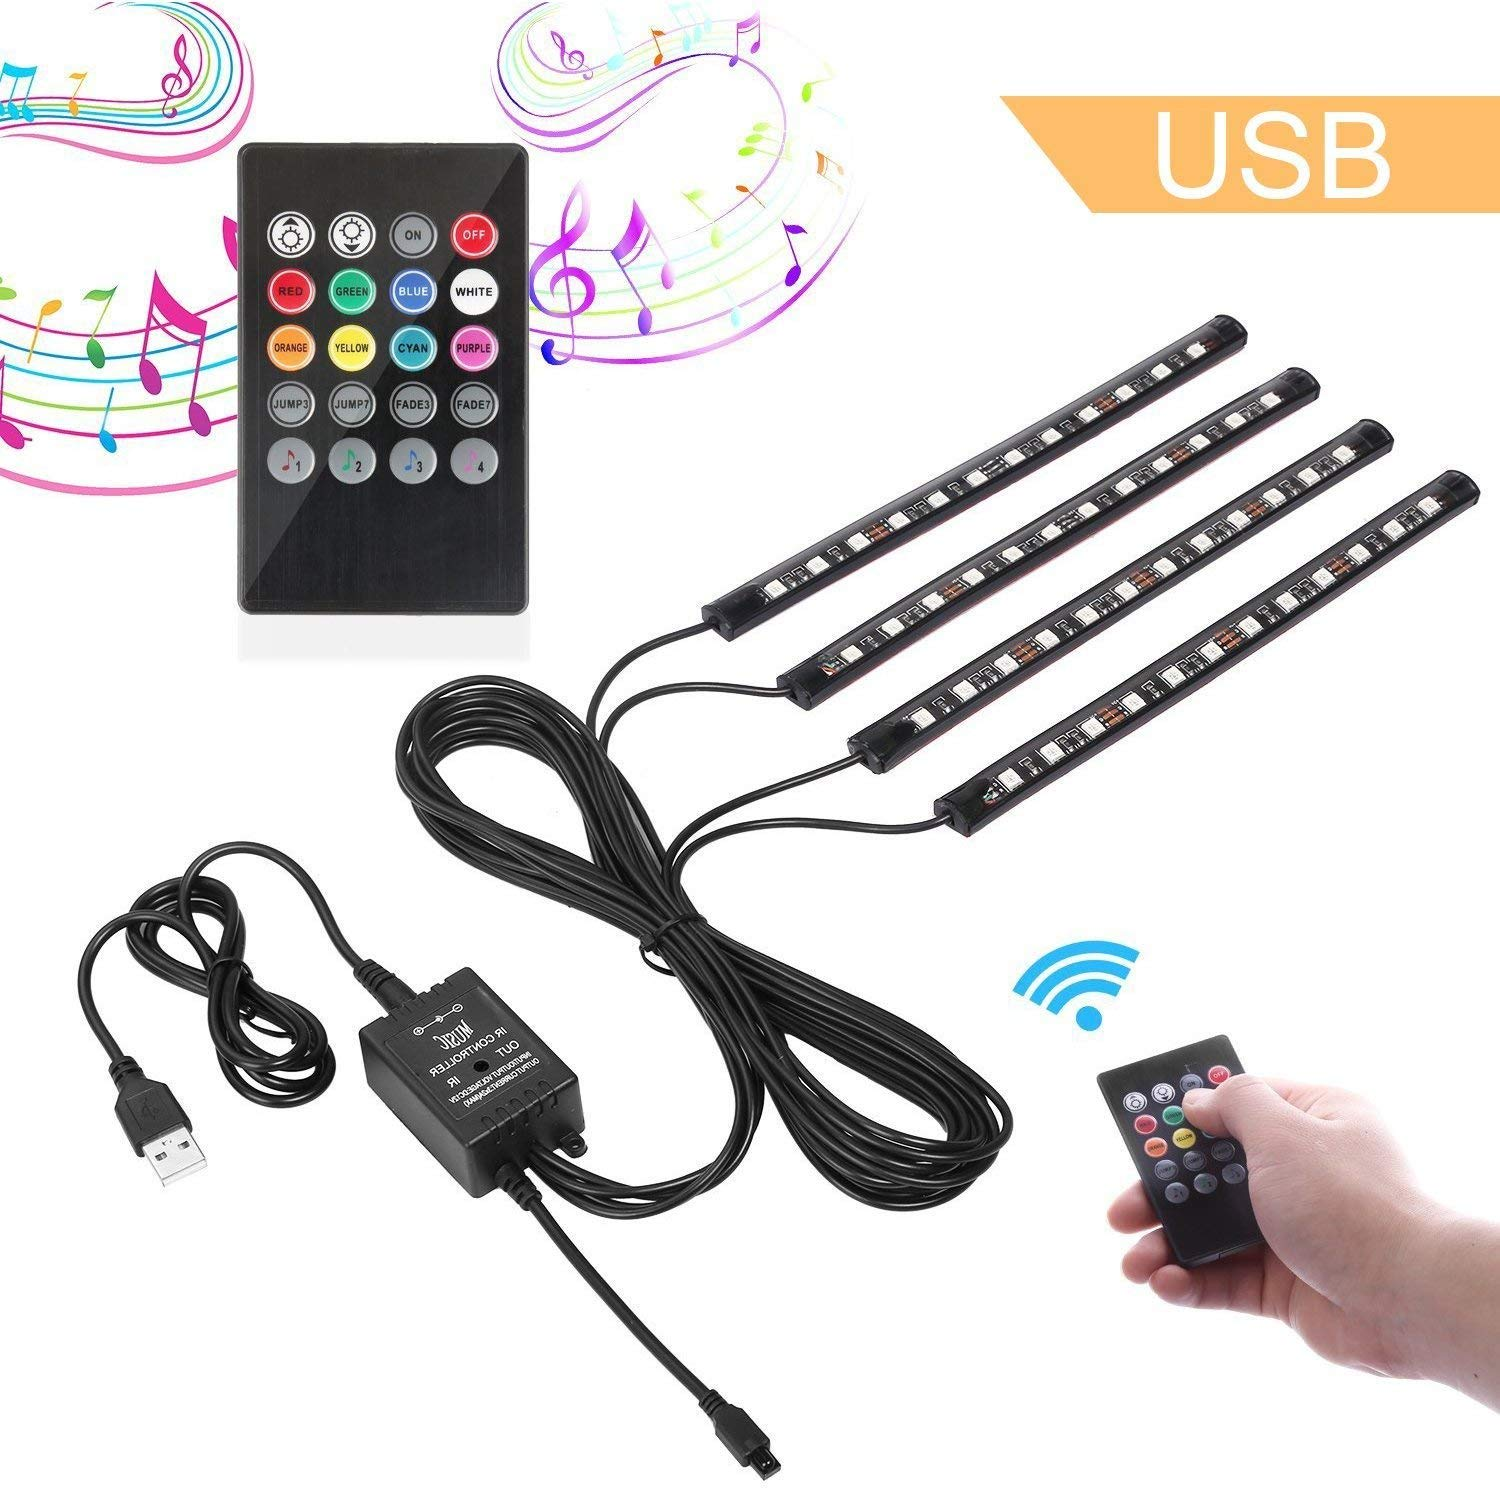 Car LED Strip Lights,4PCS 48leds USB Powered Atmosphere Lights/Interior Lights for Car with Music Sound Active, Remote Included